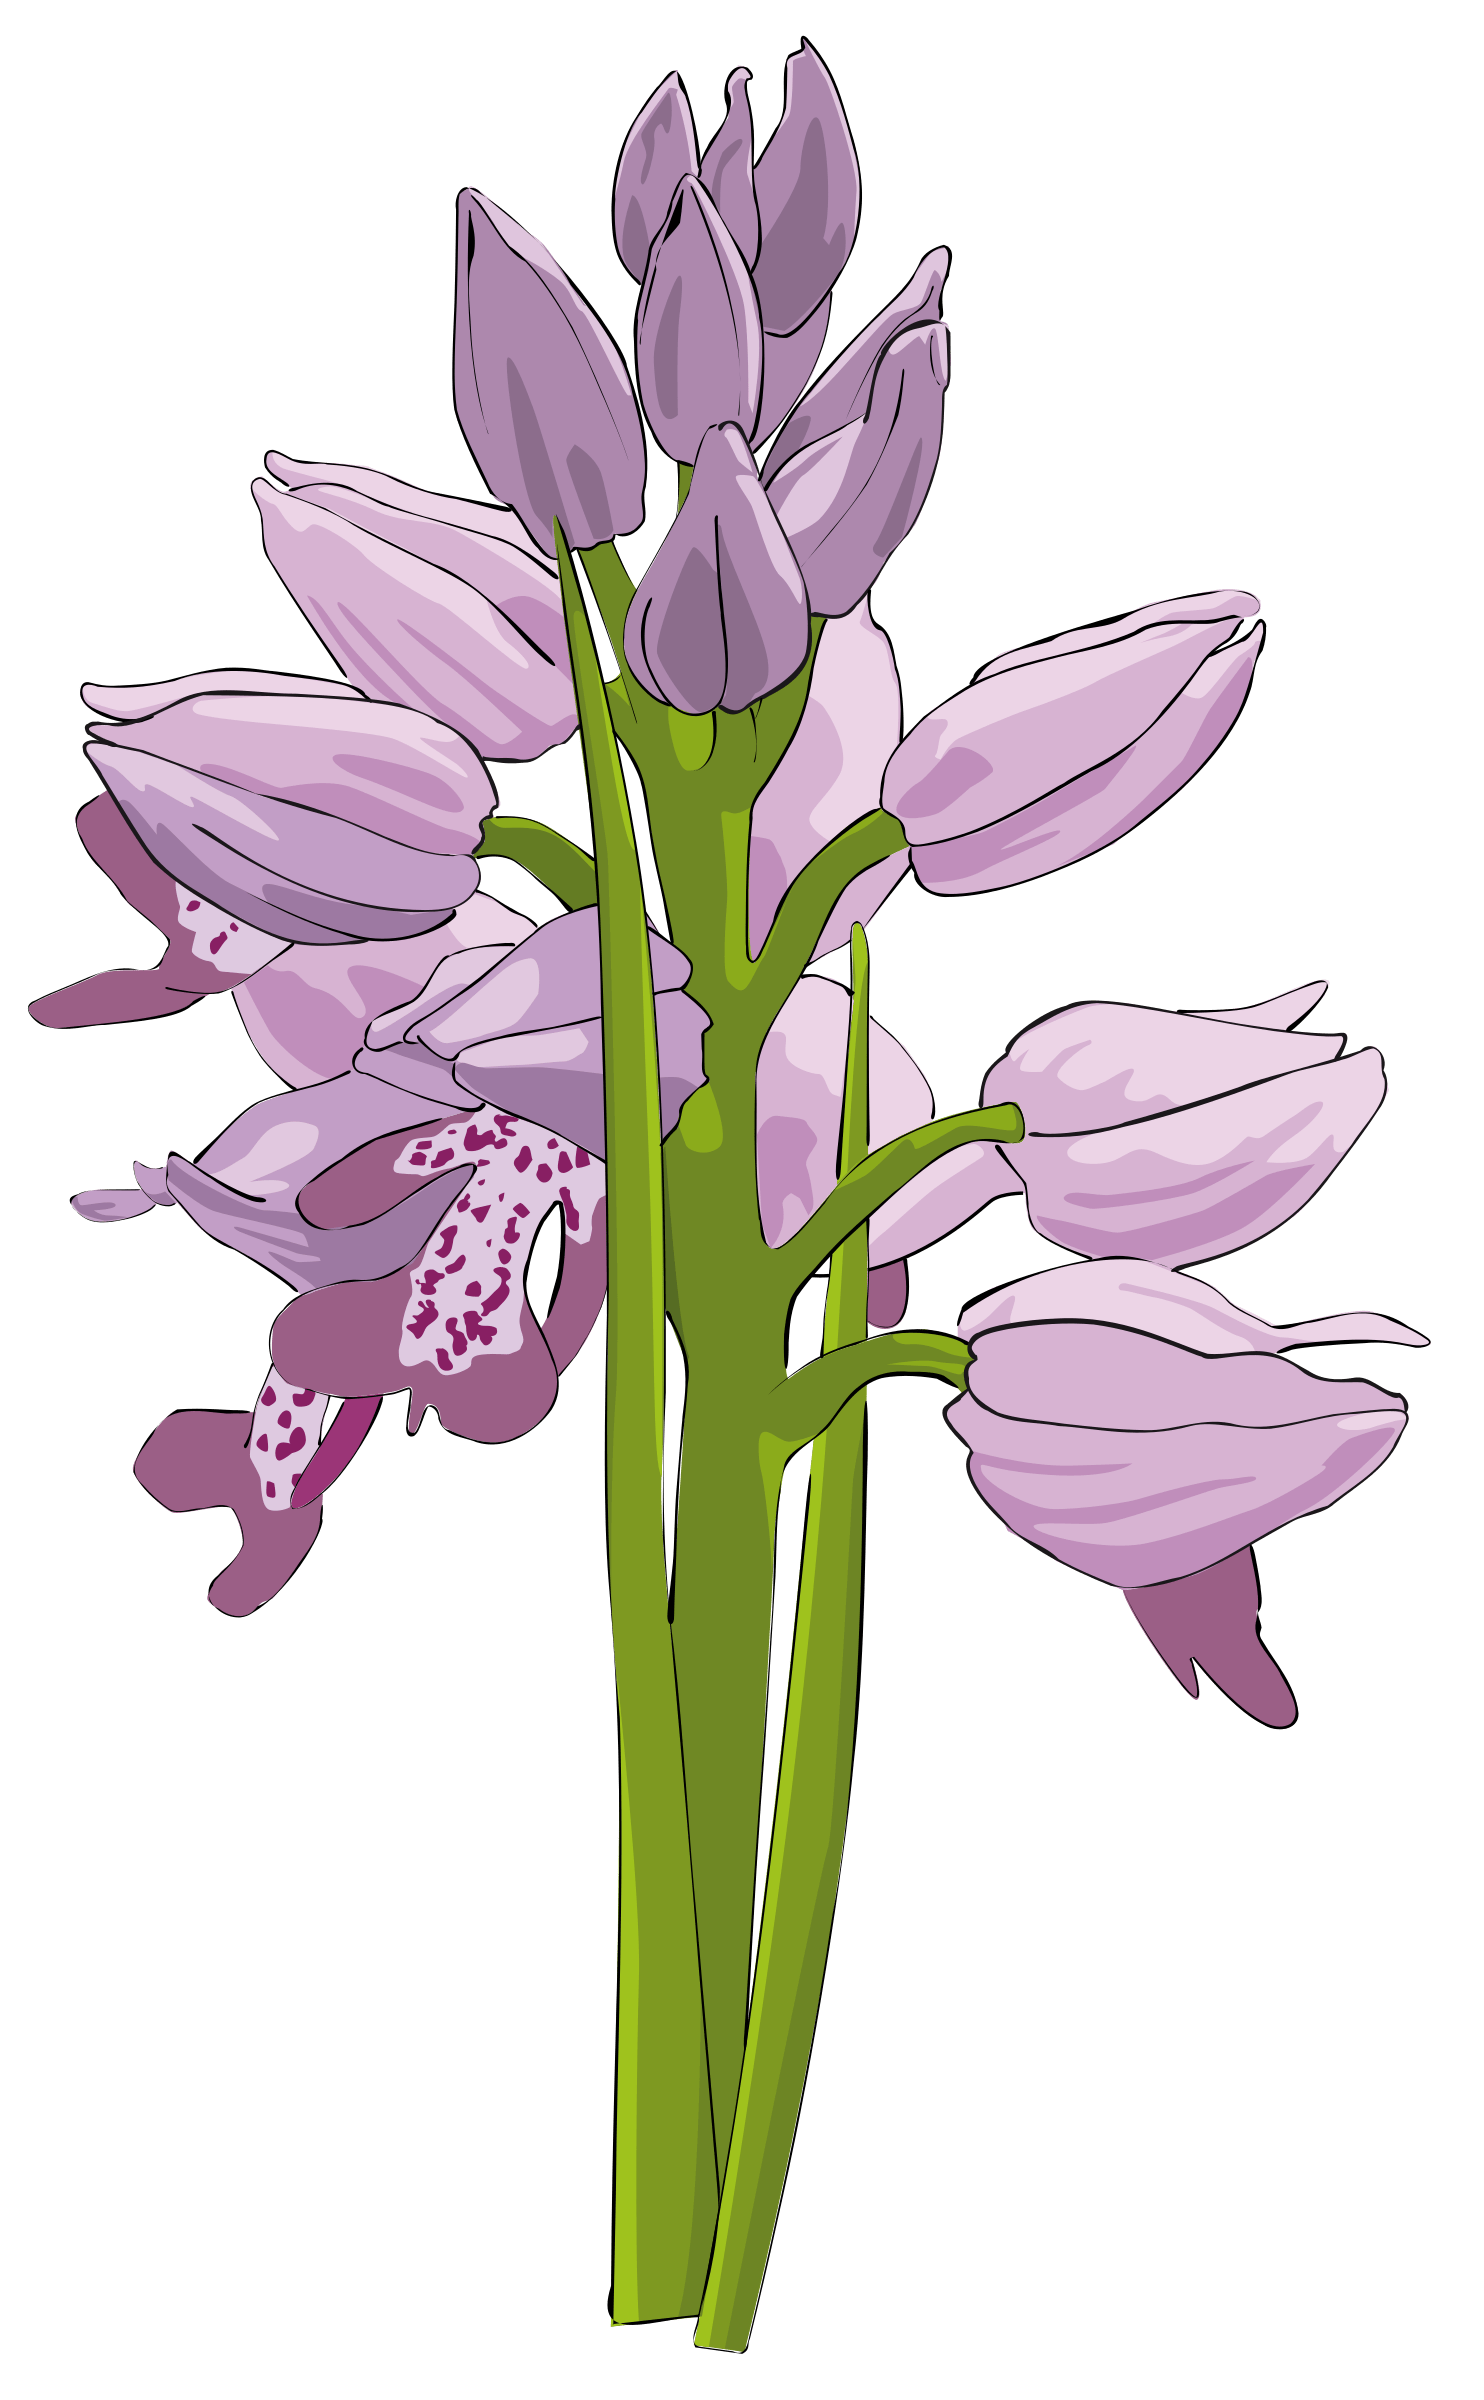 Funeral flower clipart free stock Funeral Flowers Clipart Images - Flower Wallpaper HD free stock